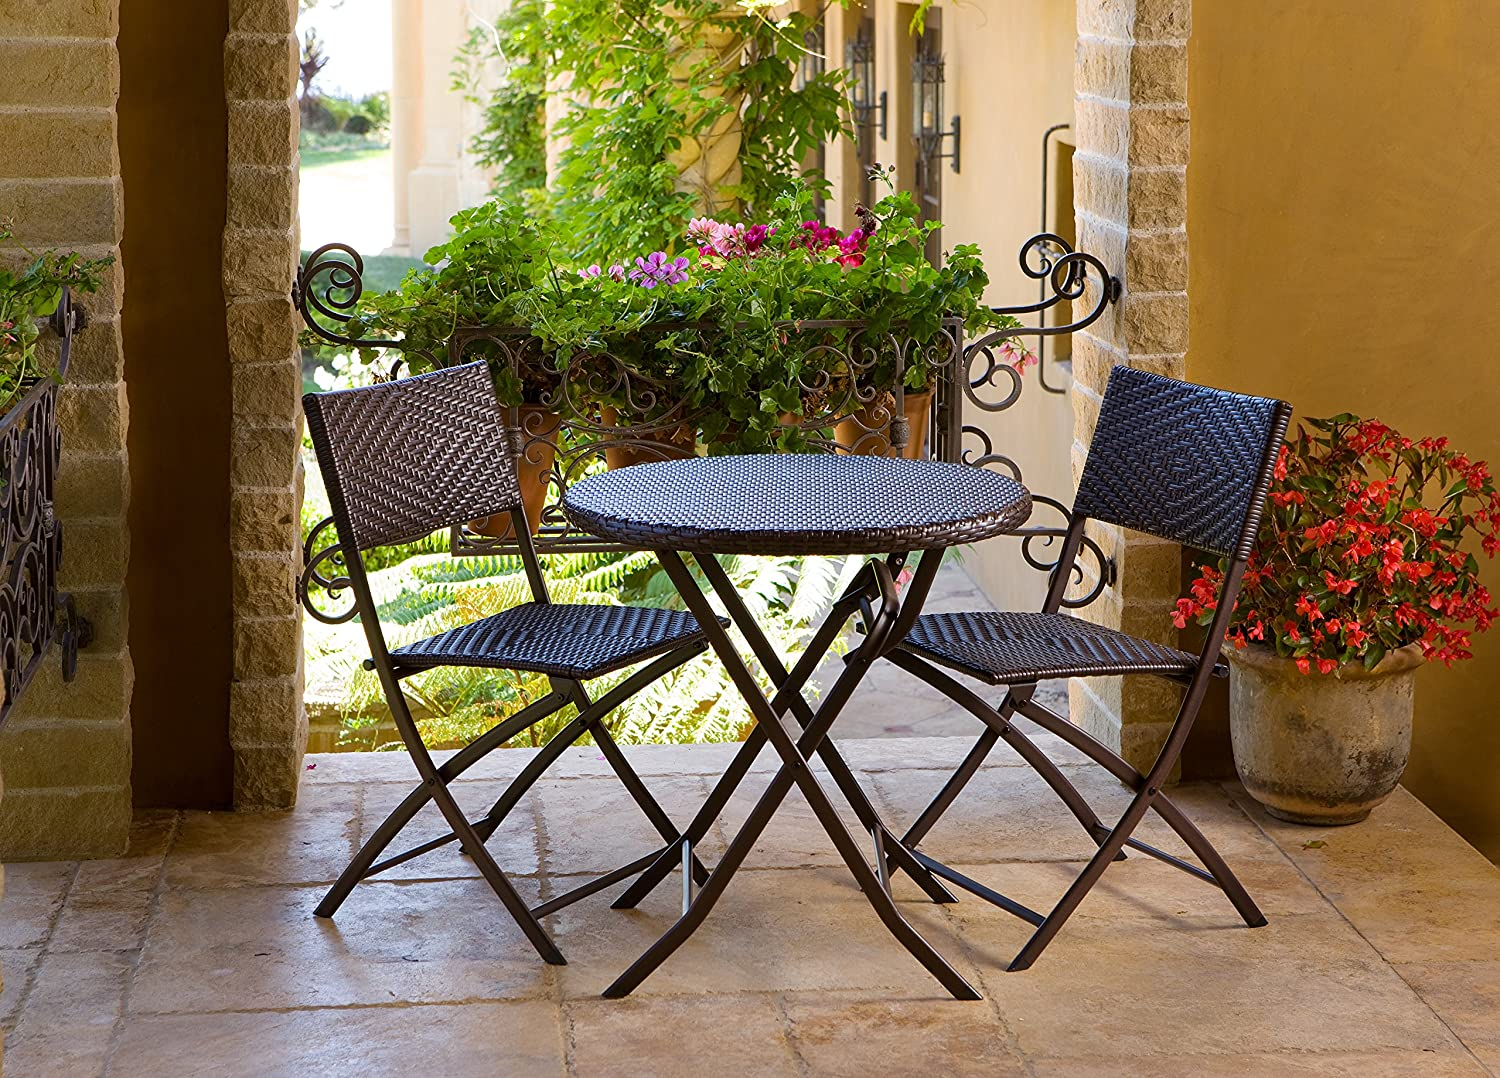 amazoncom rst brands bistro patio furniture 3piece outdoor and patio furniture sets patio lawn u0026 garden